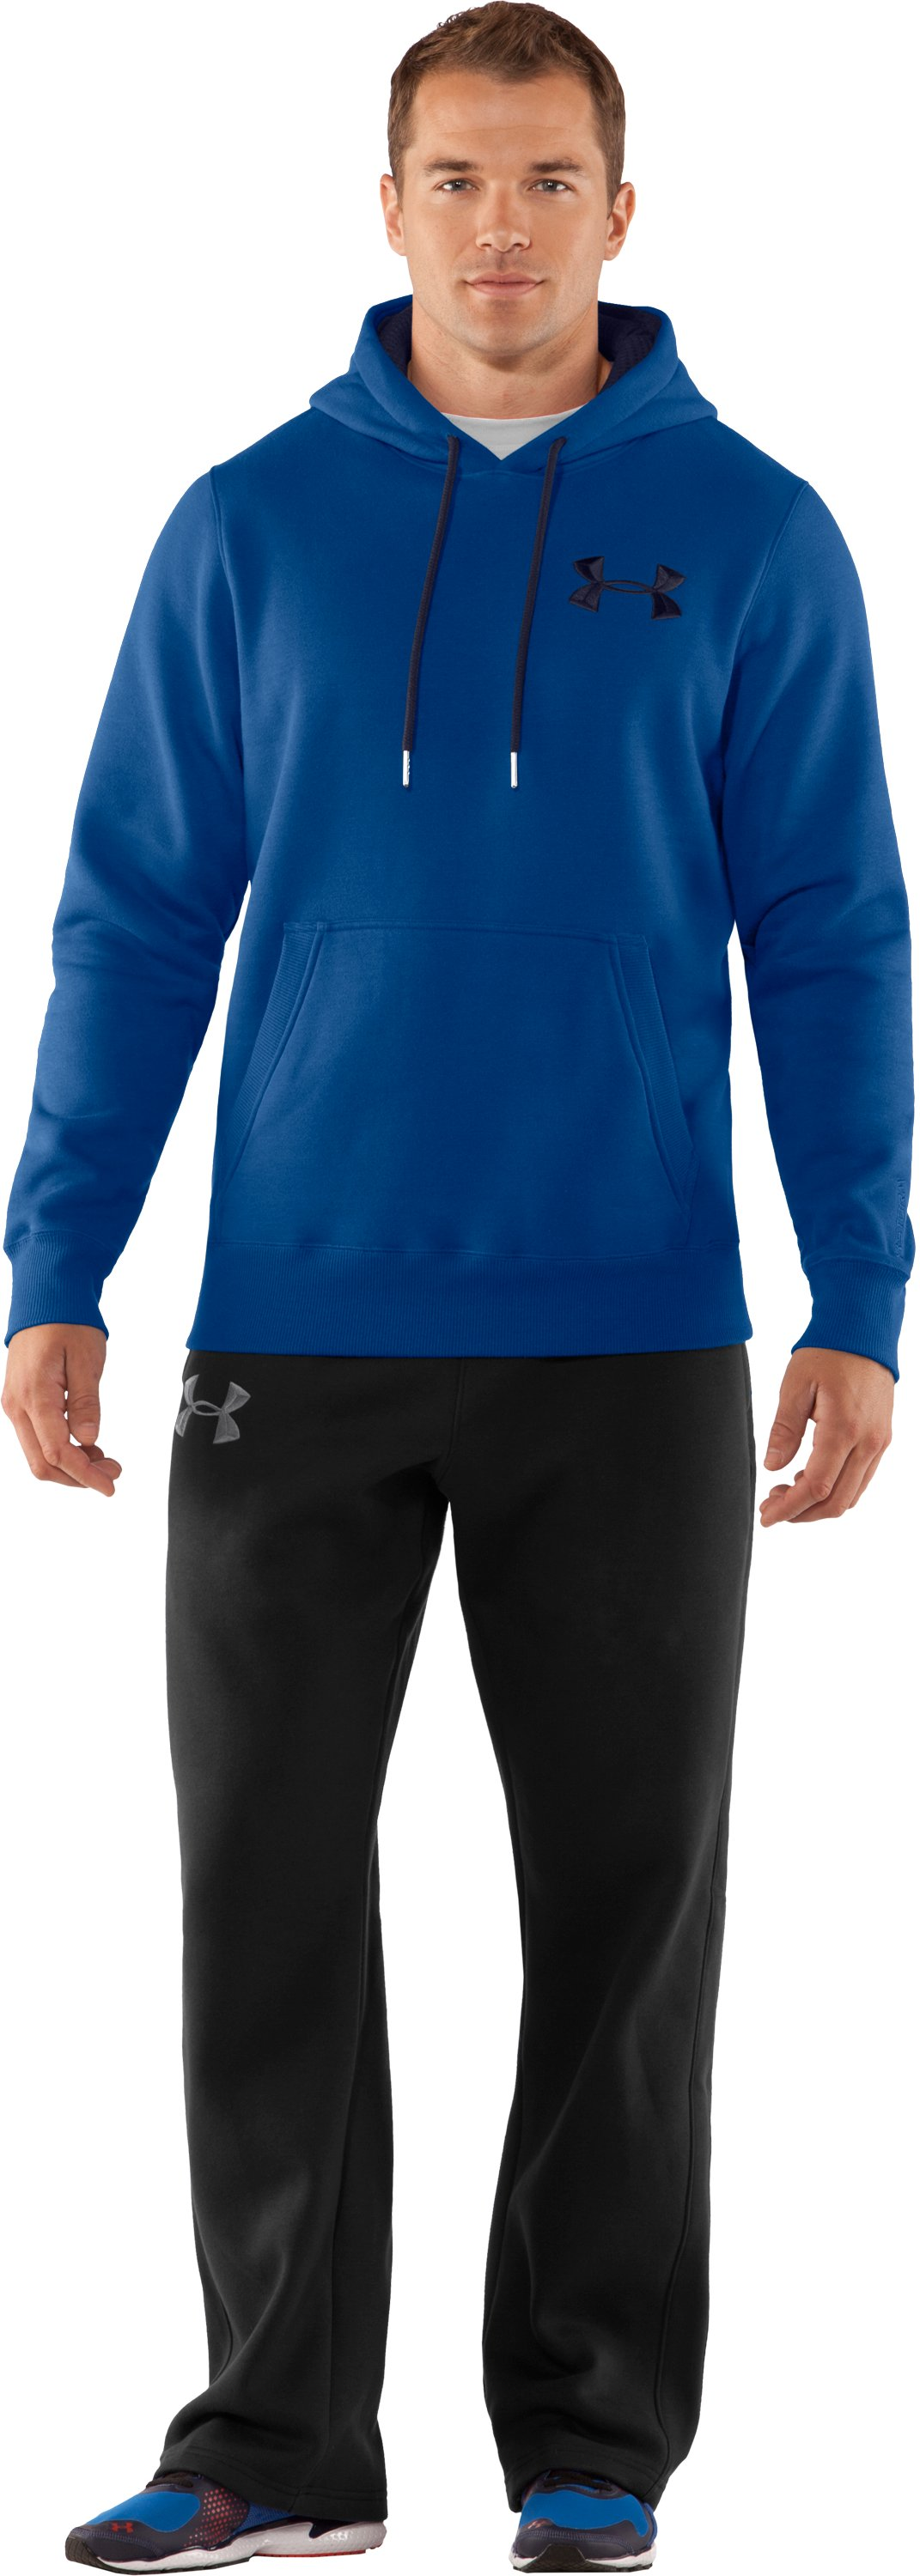 Men's Charged Cotton® Storm Pullover Hoodie, EMPIRE BLUE, Front